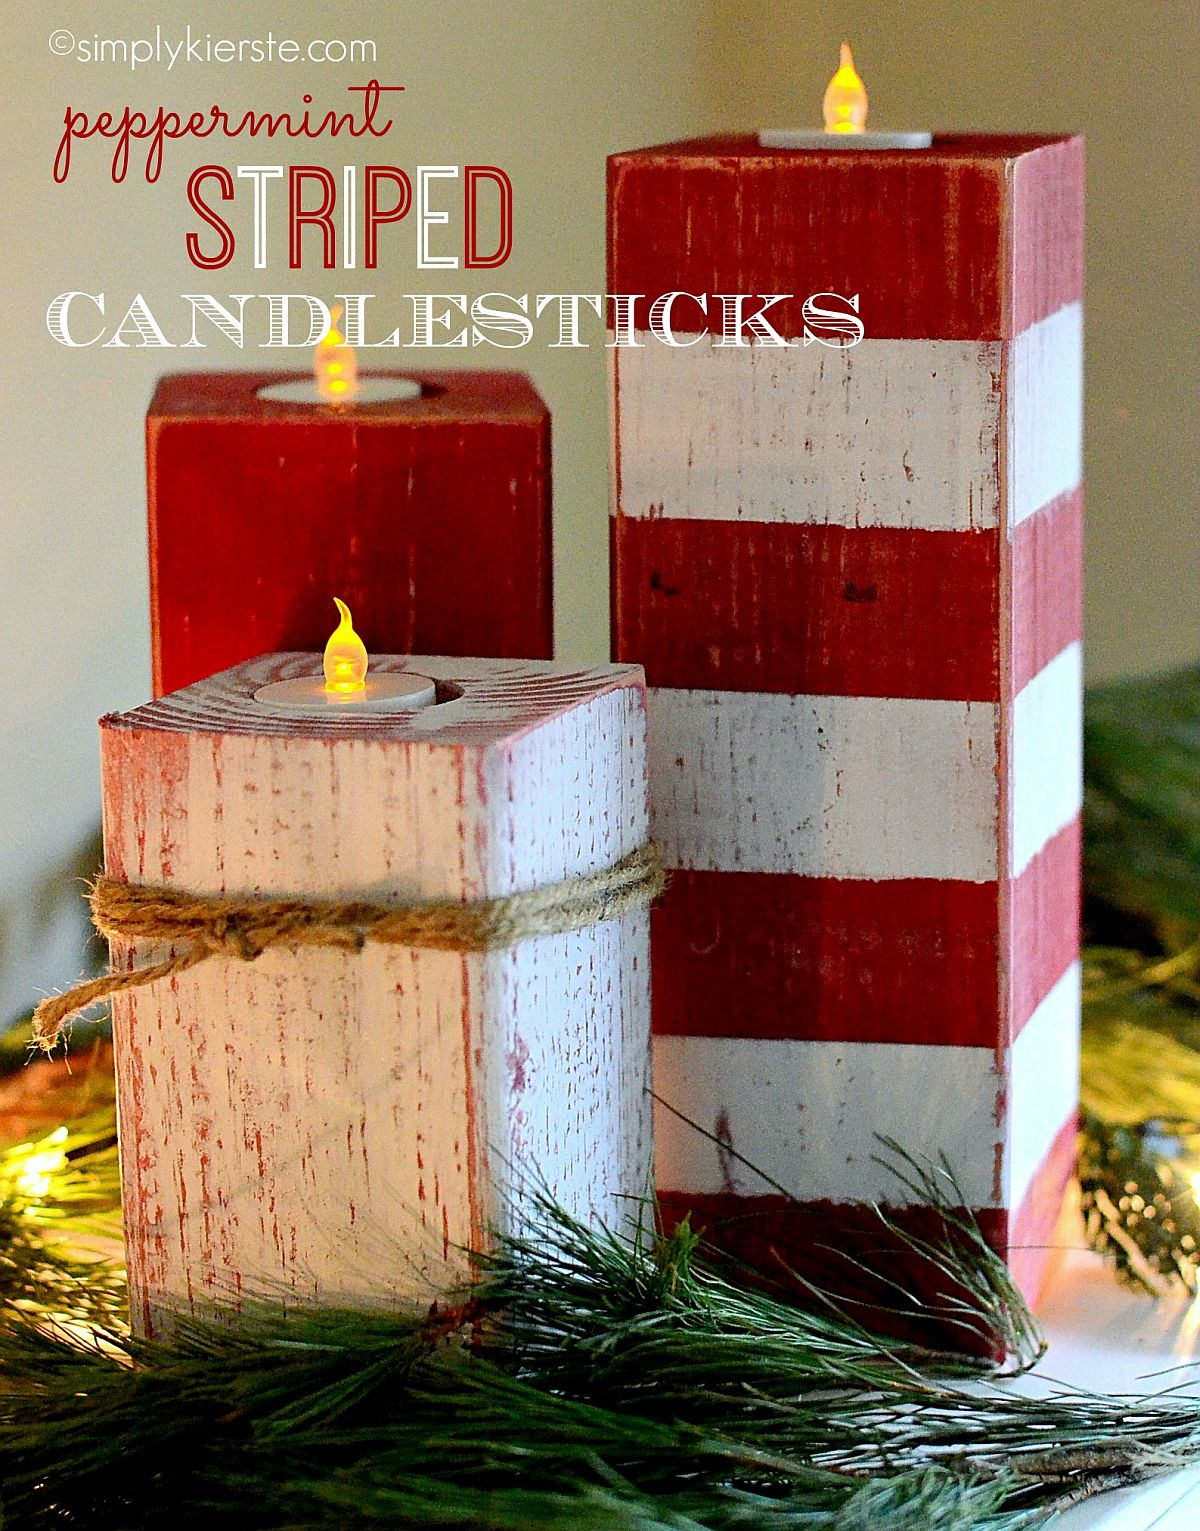 DIY Christmassy Peppermint Striped Candlesticks [From: Simply Kierste]